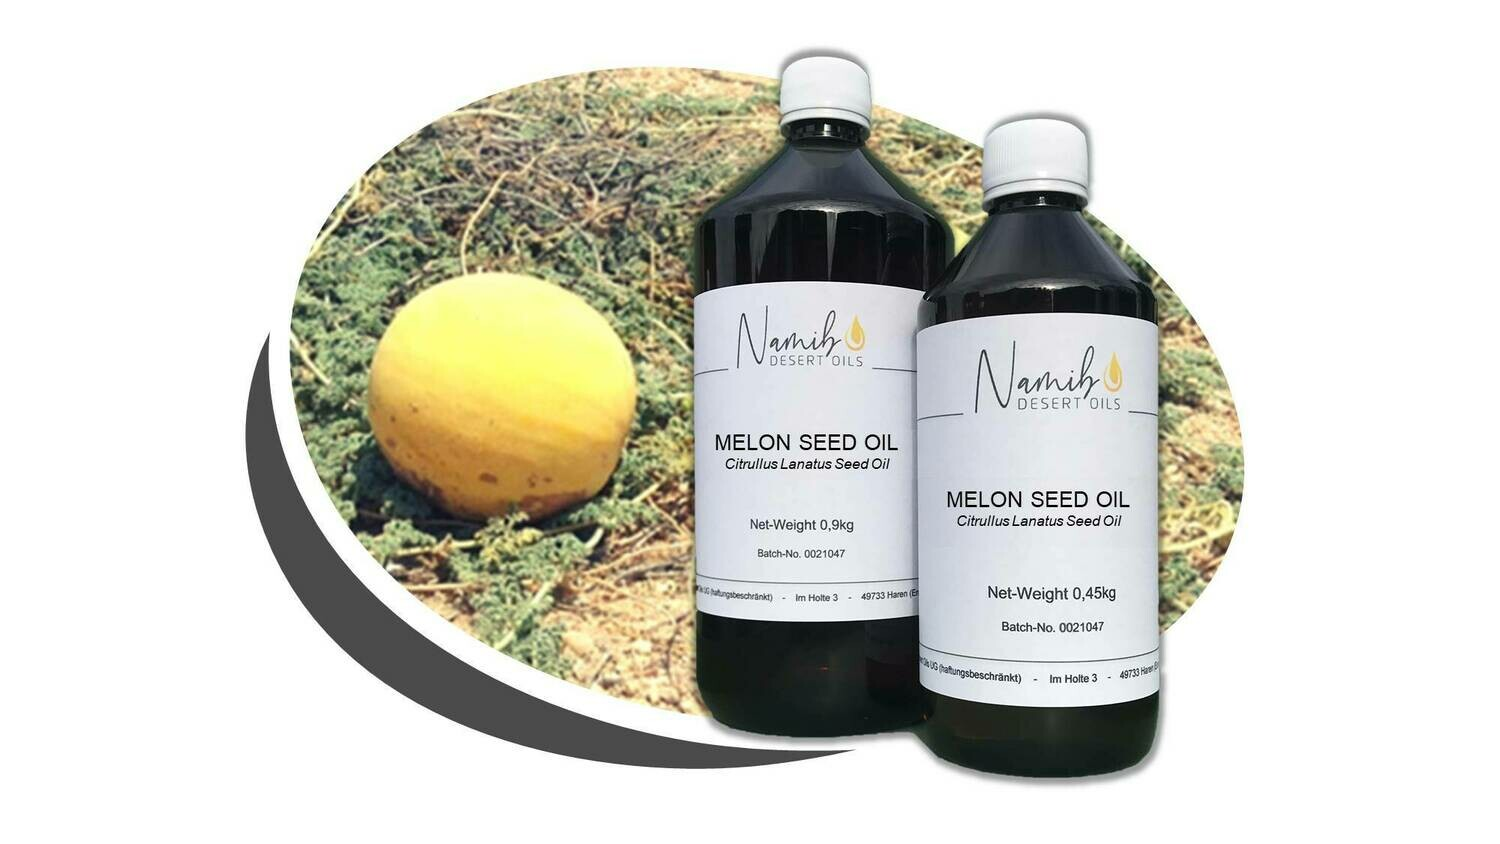 Kalahari Melon Oil - in 1 liter bottle